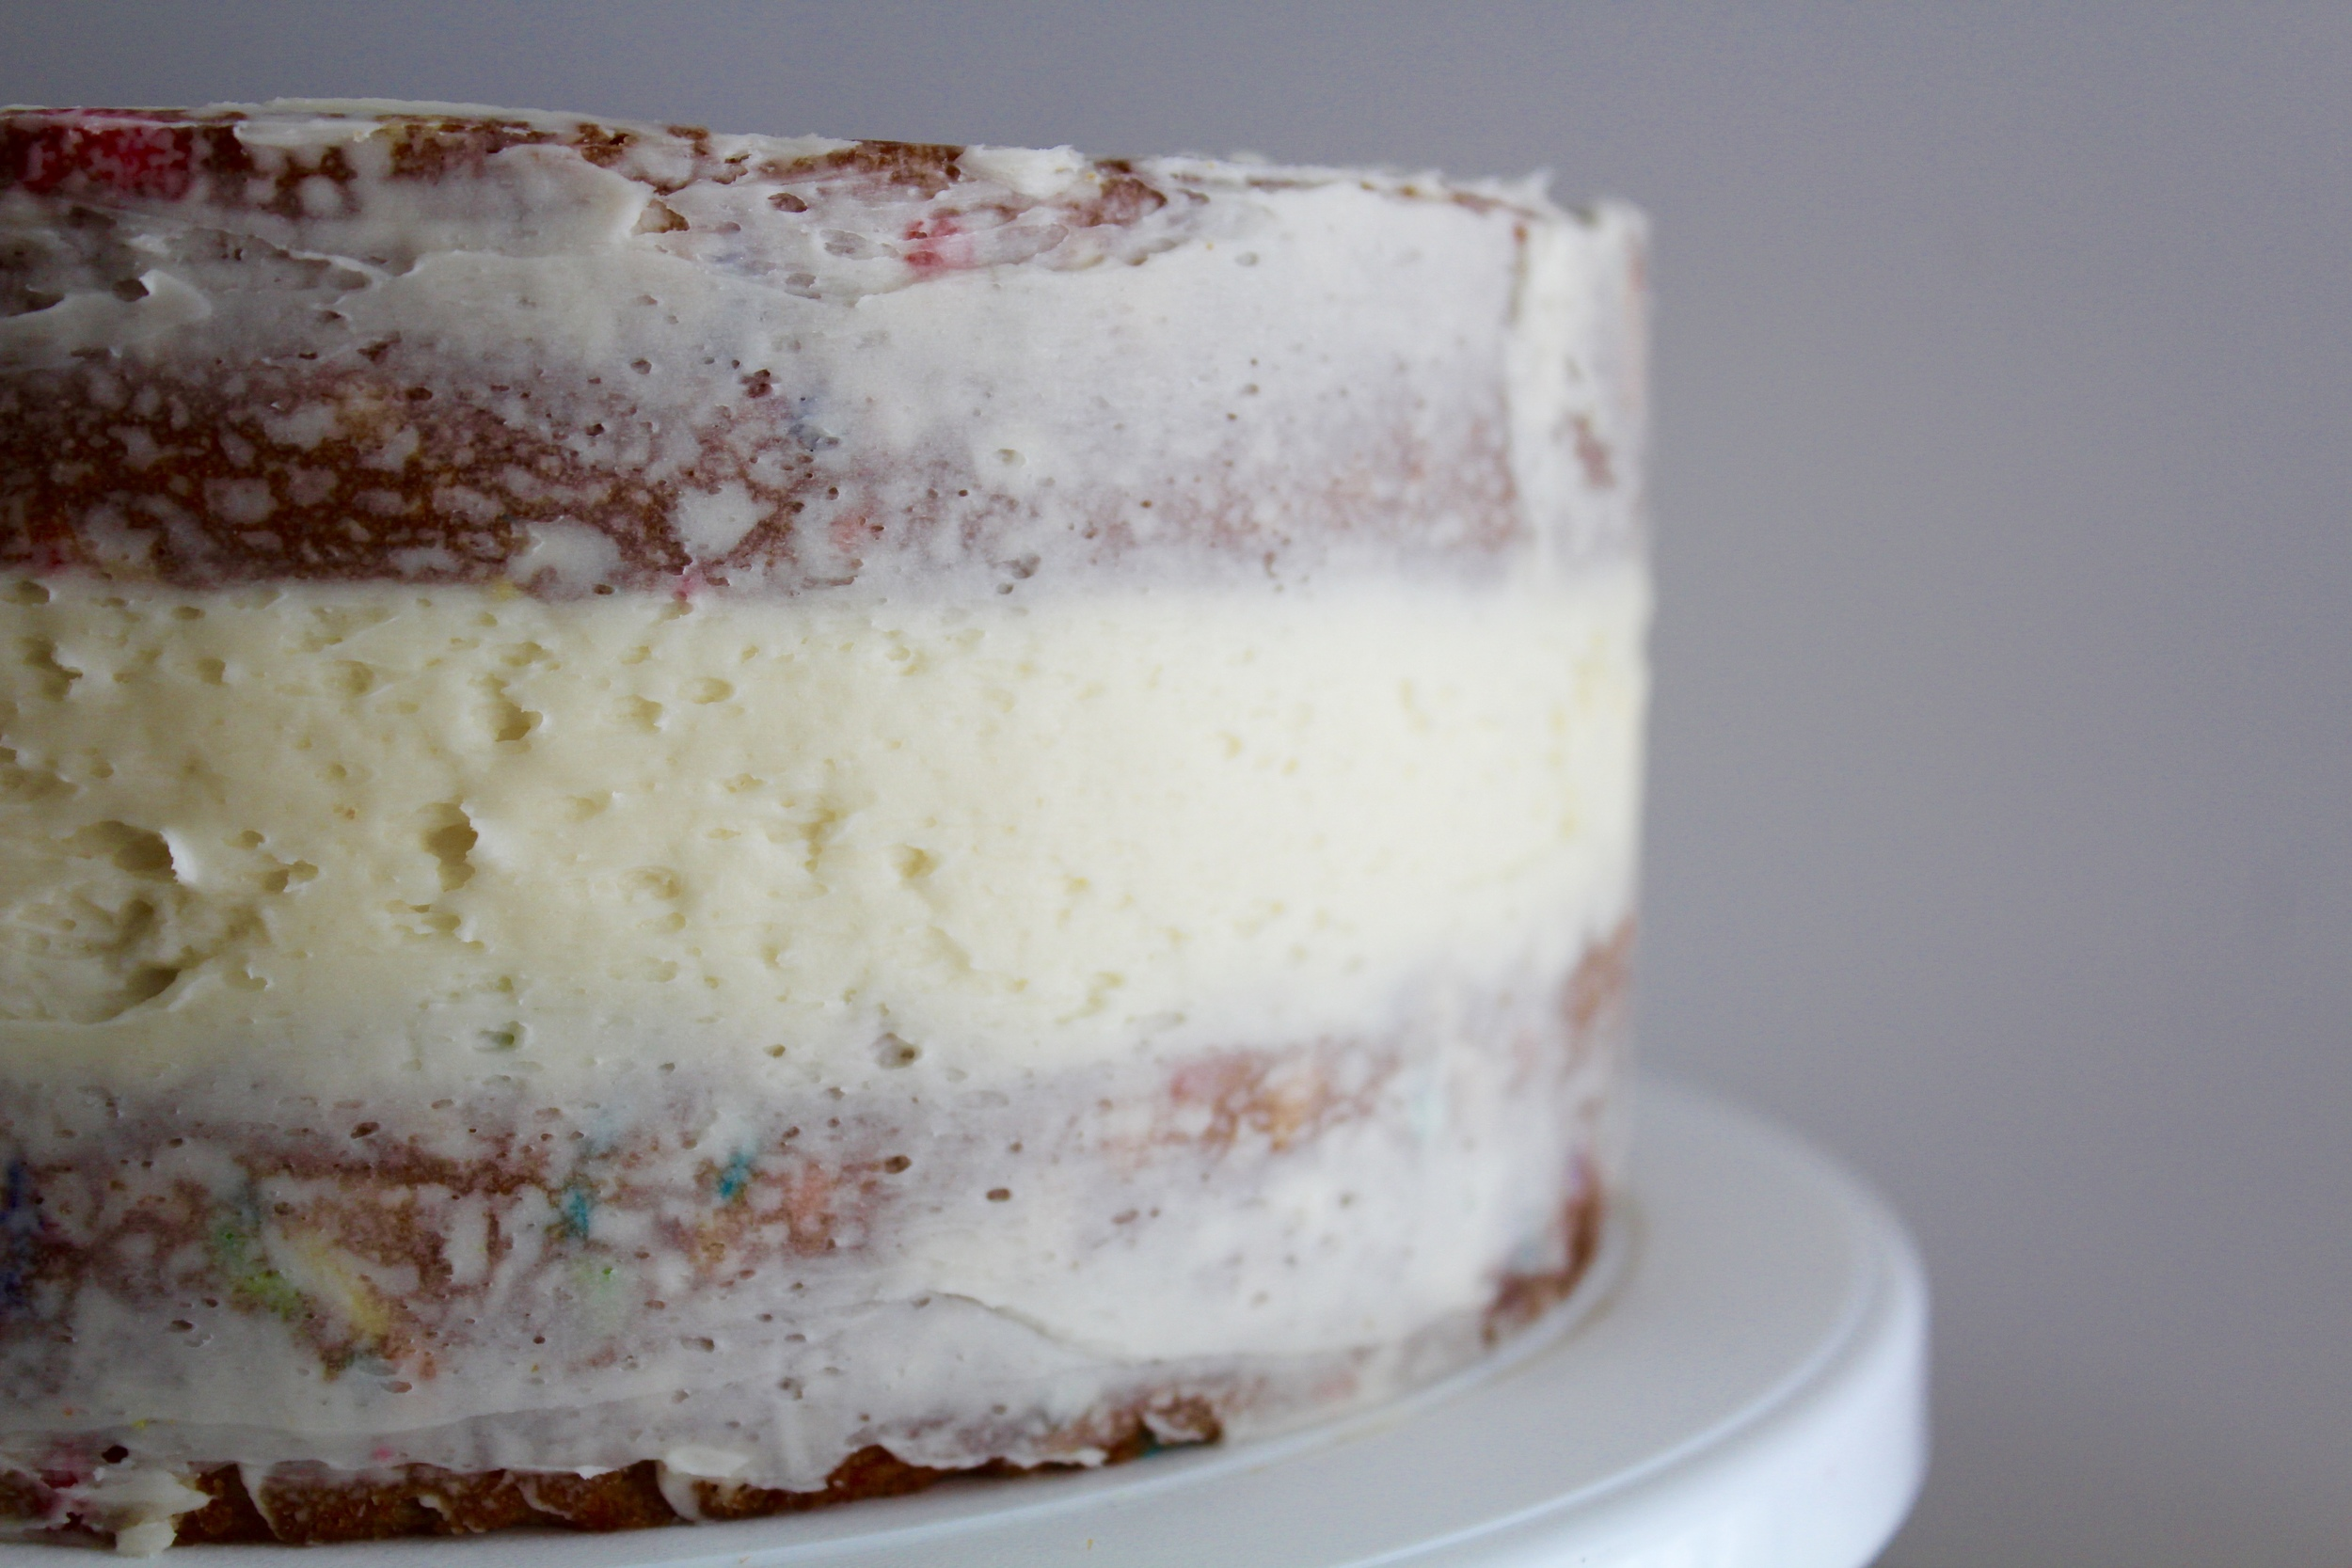 If you're not a fan of frosting you can leave it like this for a rustic, less sweet cake!